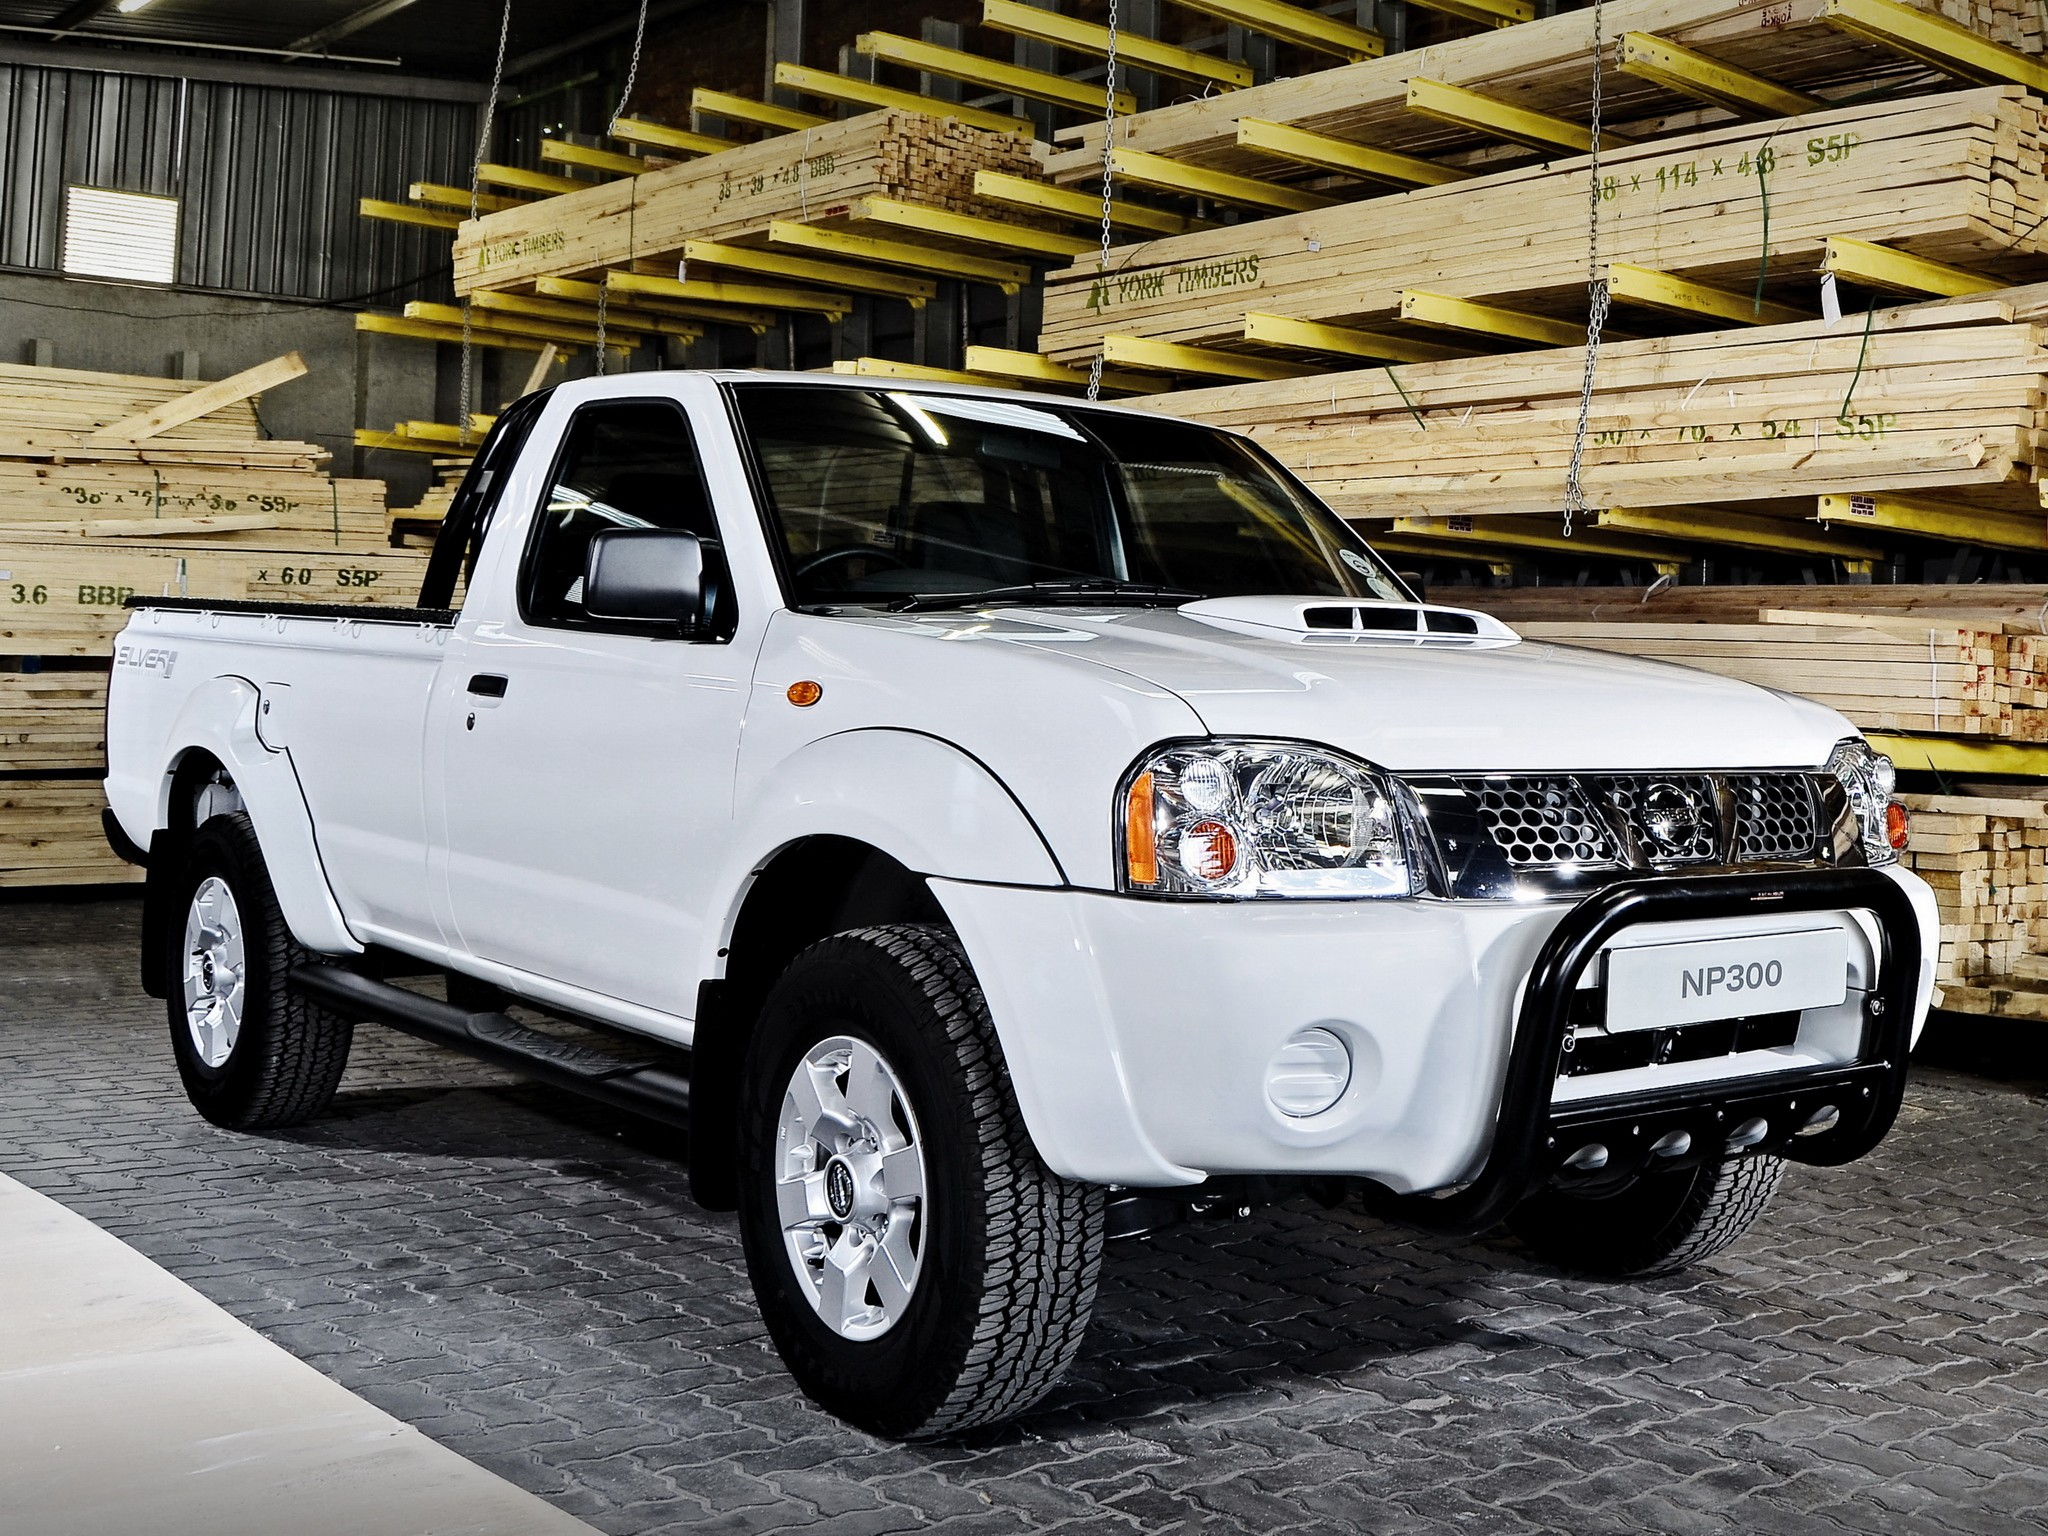 NISSAN NP300 Pickup Single Cab specs & photos - 2008, 2009, 2010, 2011, 2012, 2013, 2014, 2015 ...